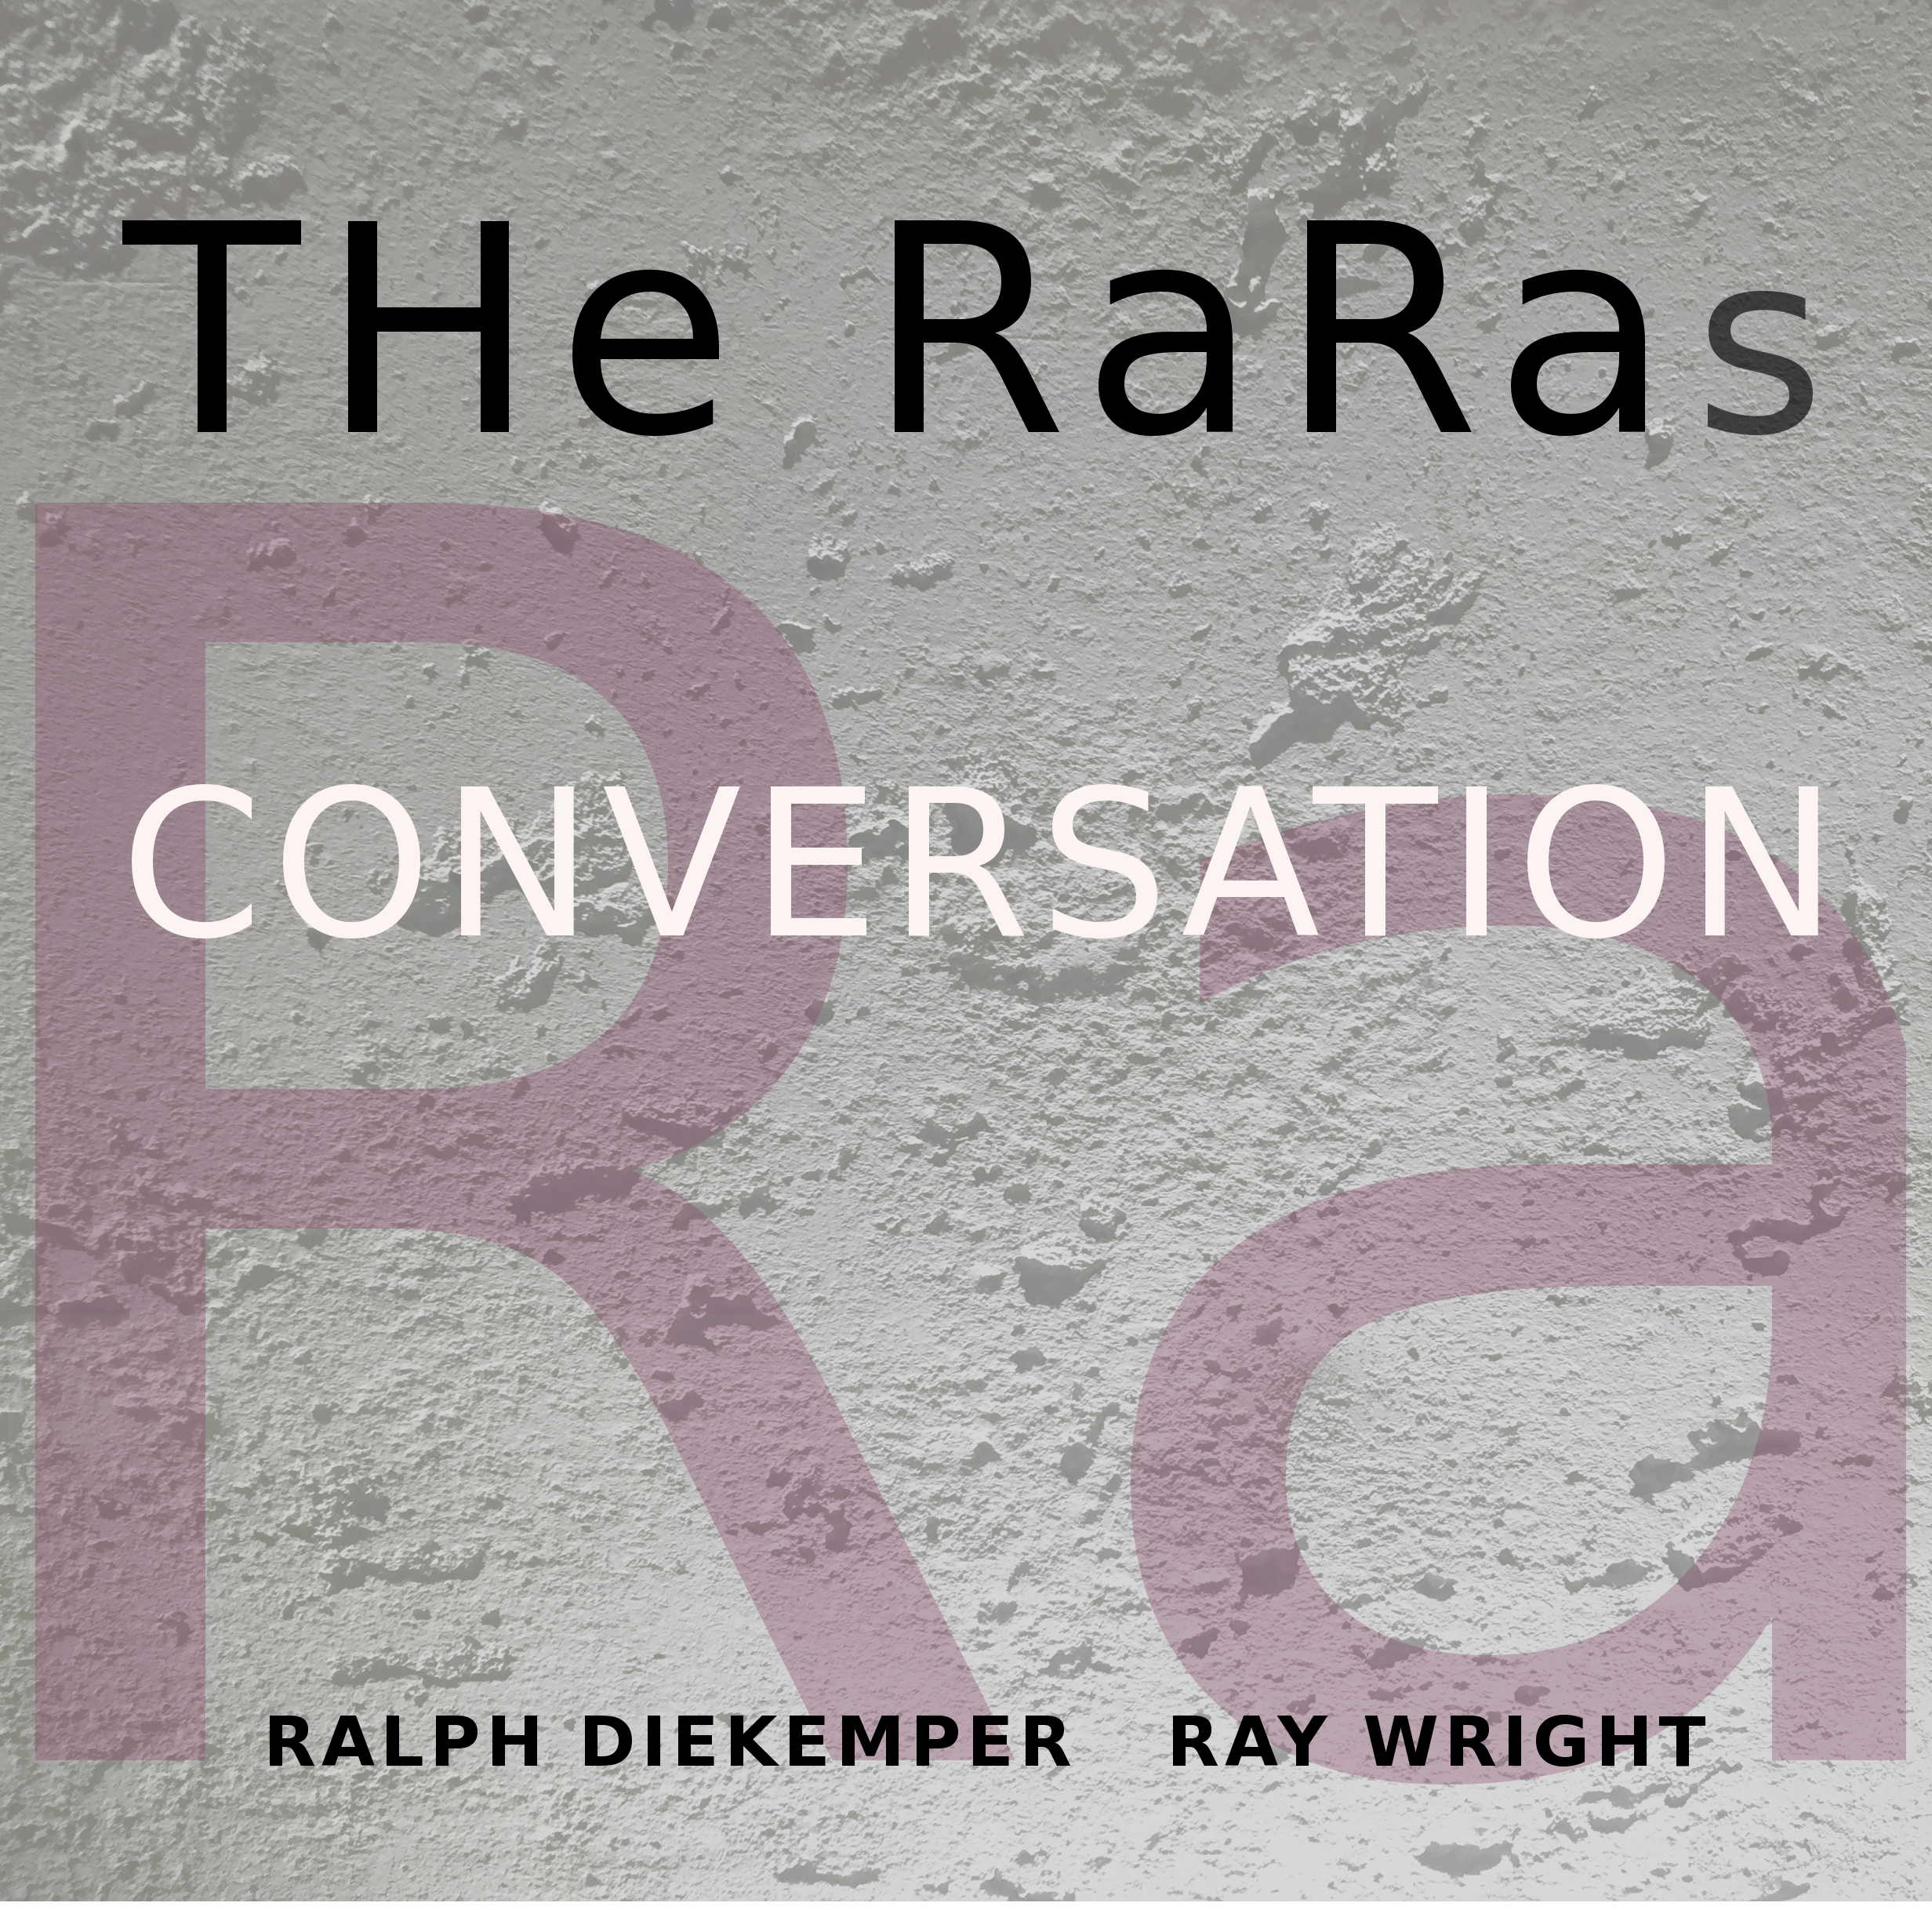 TRR Conversation CD Cover 1st Draft